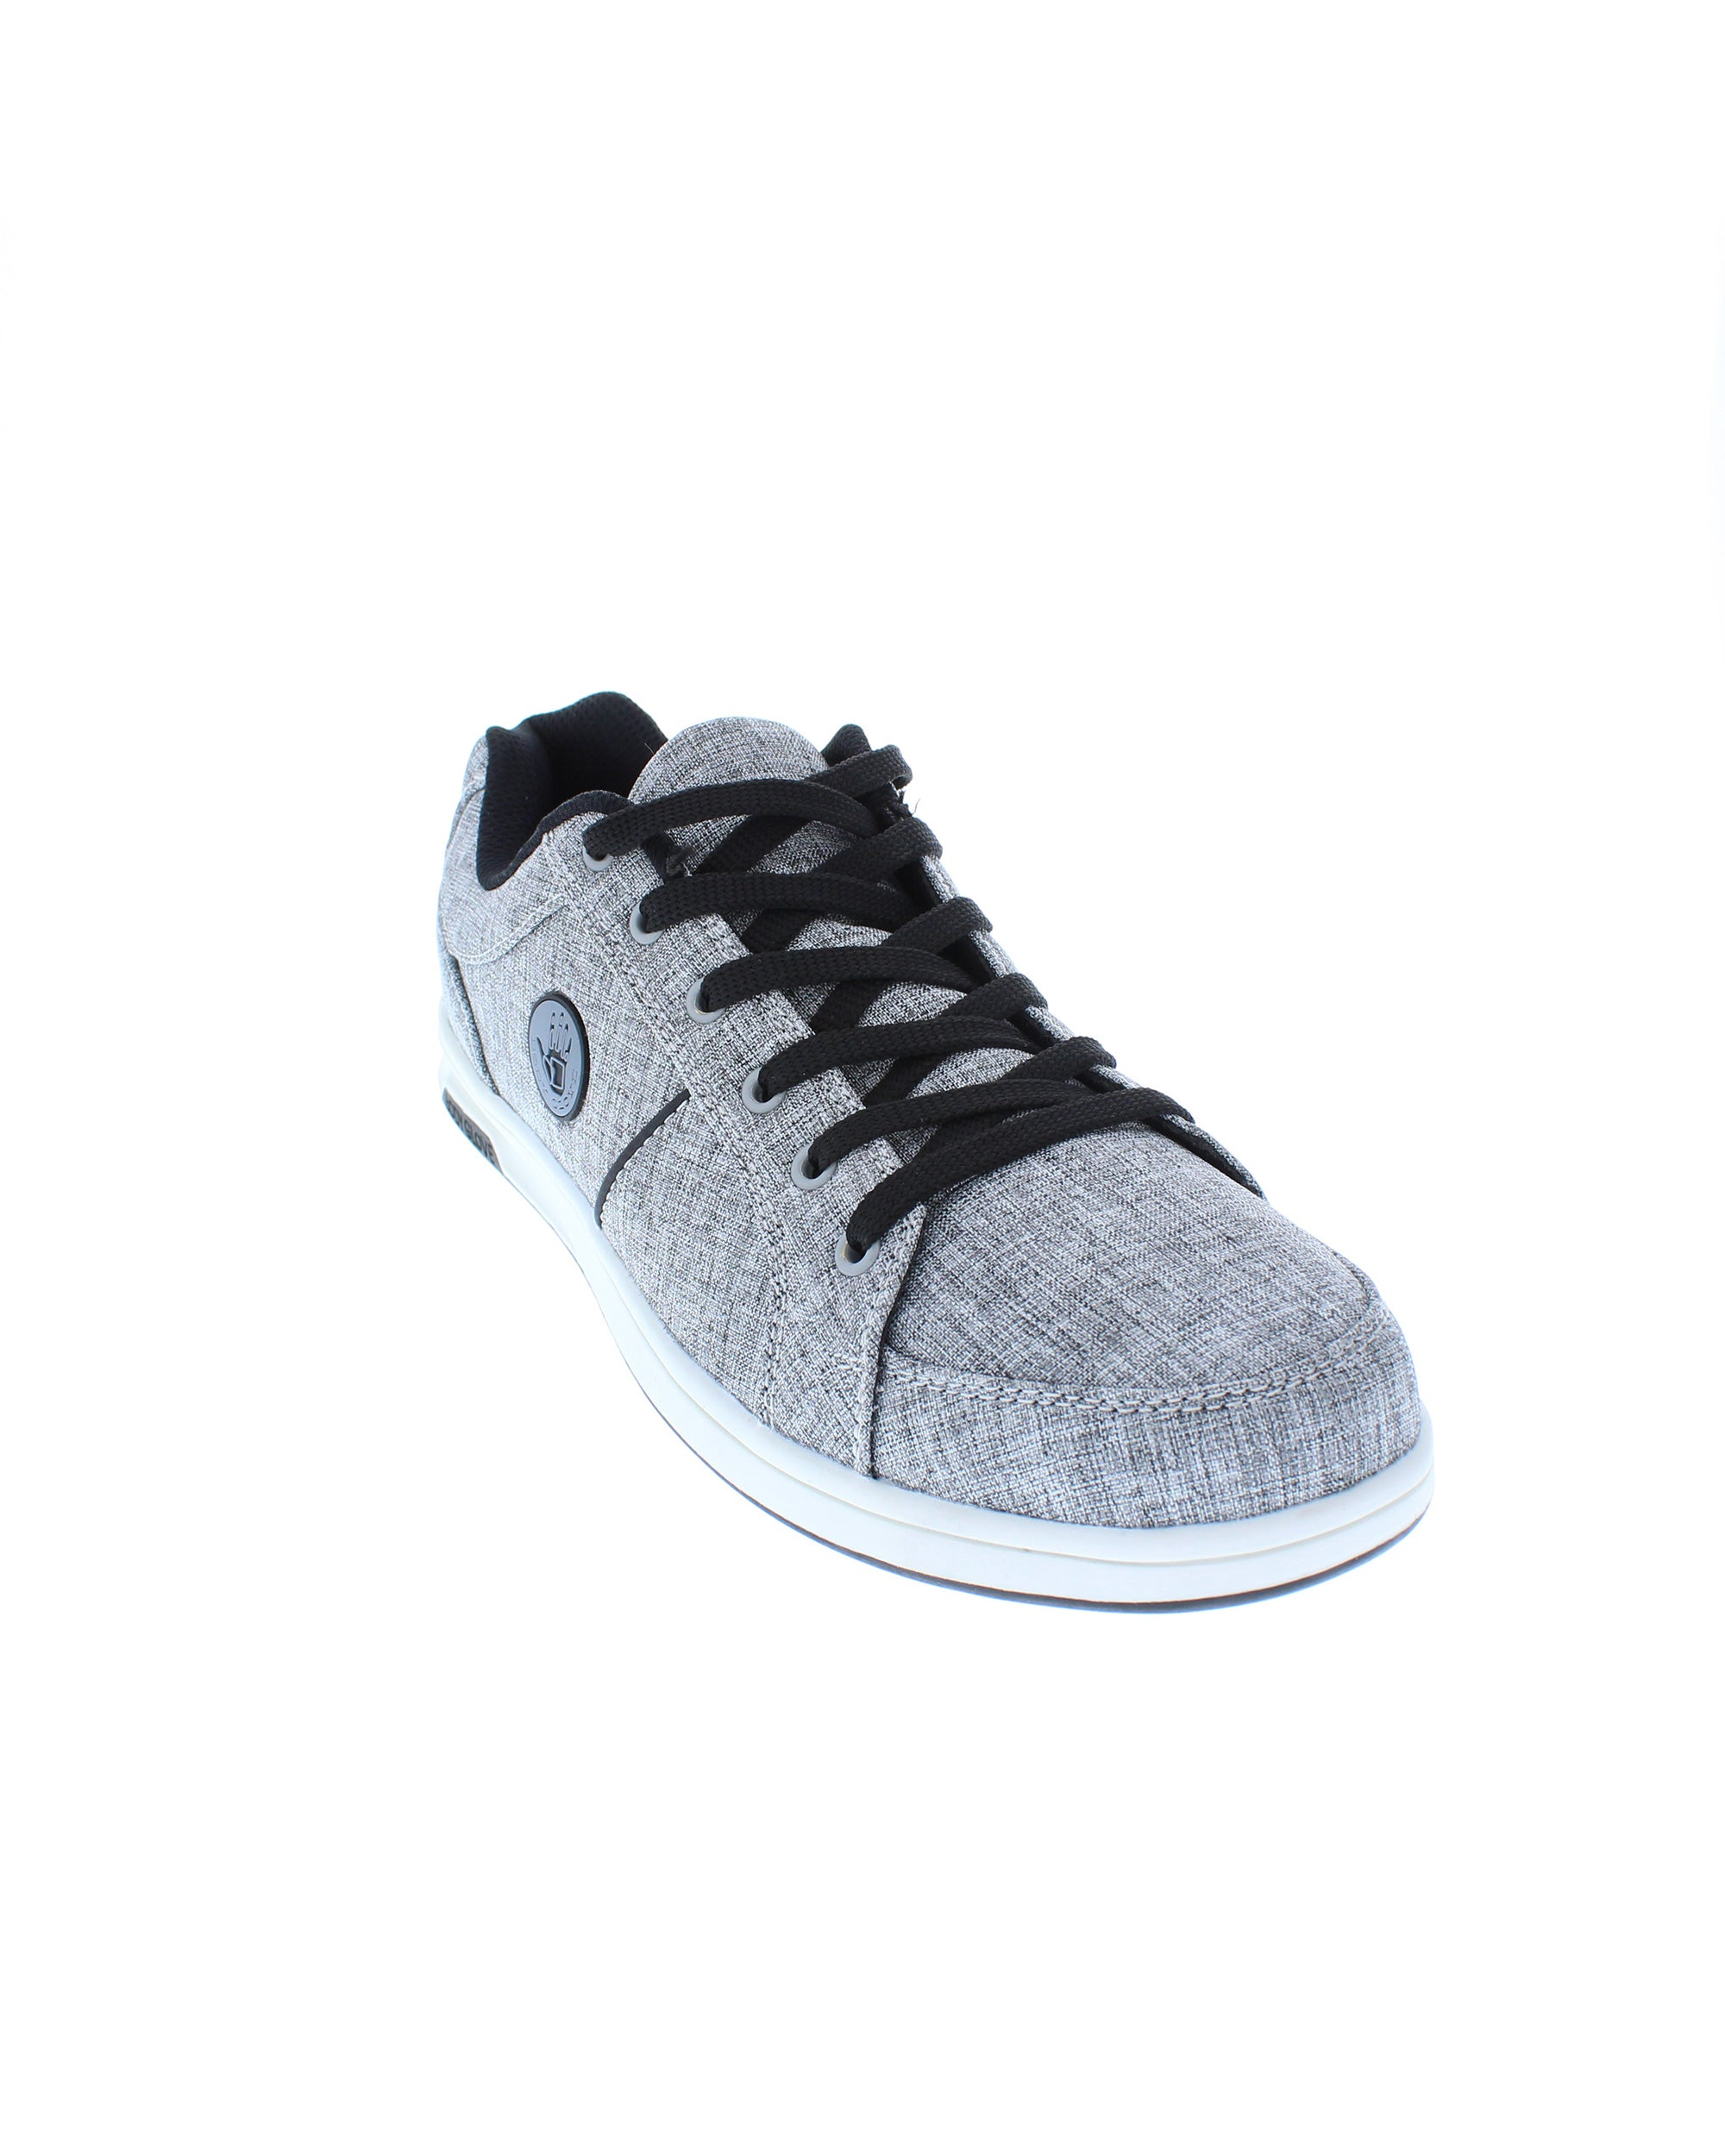 bef750d39f3 Hover or Click to Enlarge. Men s Kauai Grey Heather Canvas Sneaker Men s  Kauai Grey Heather Canvas Sneaker ...